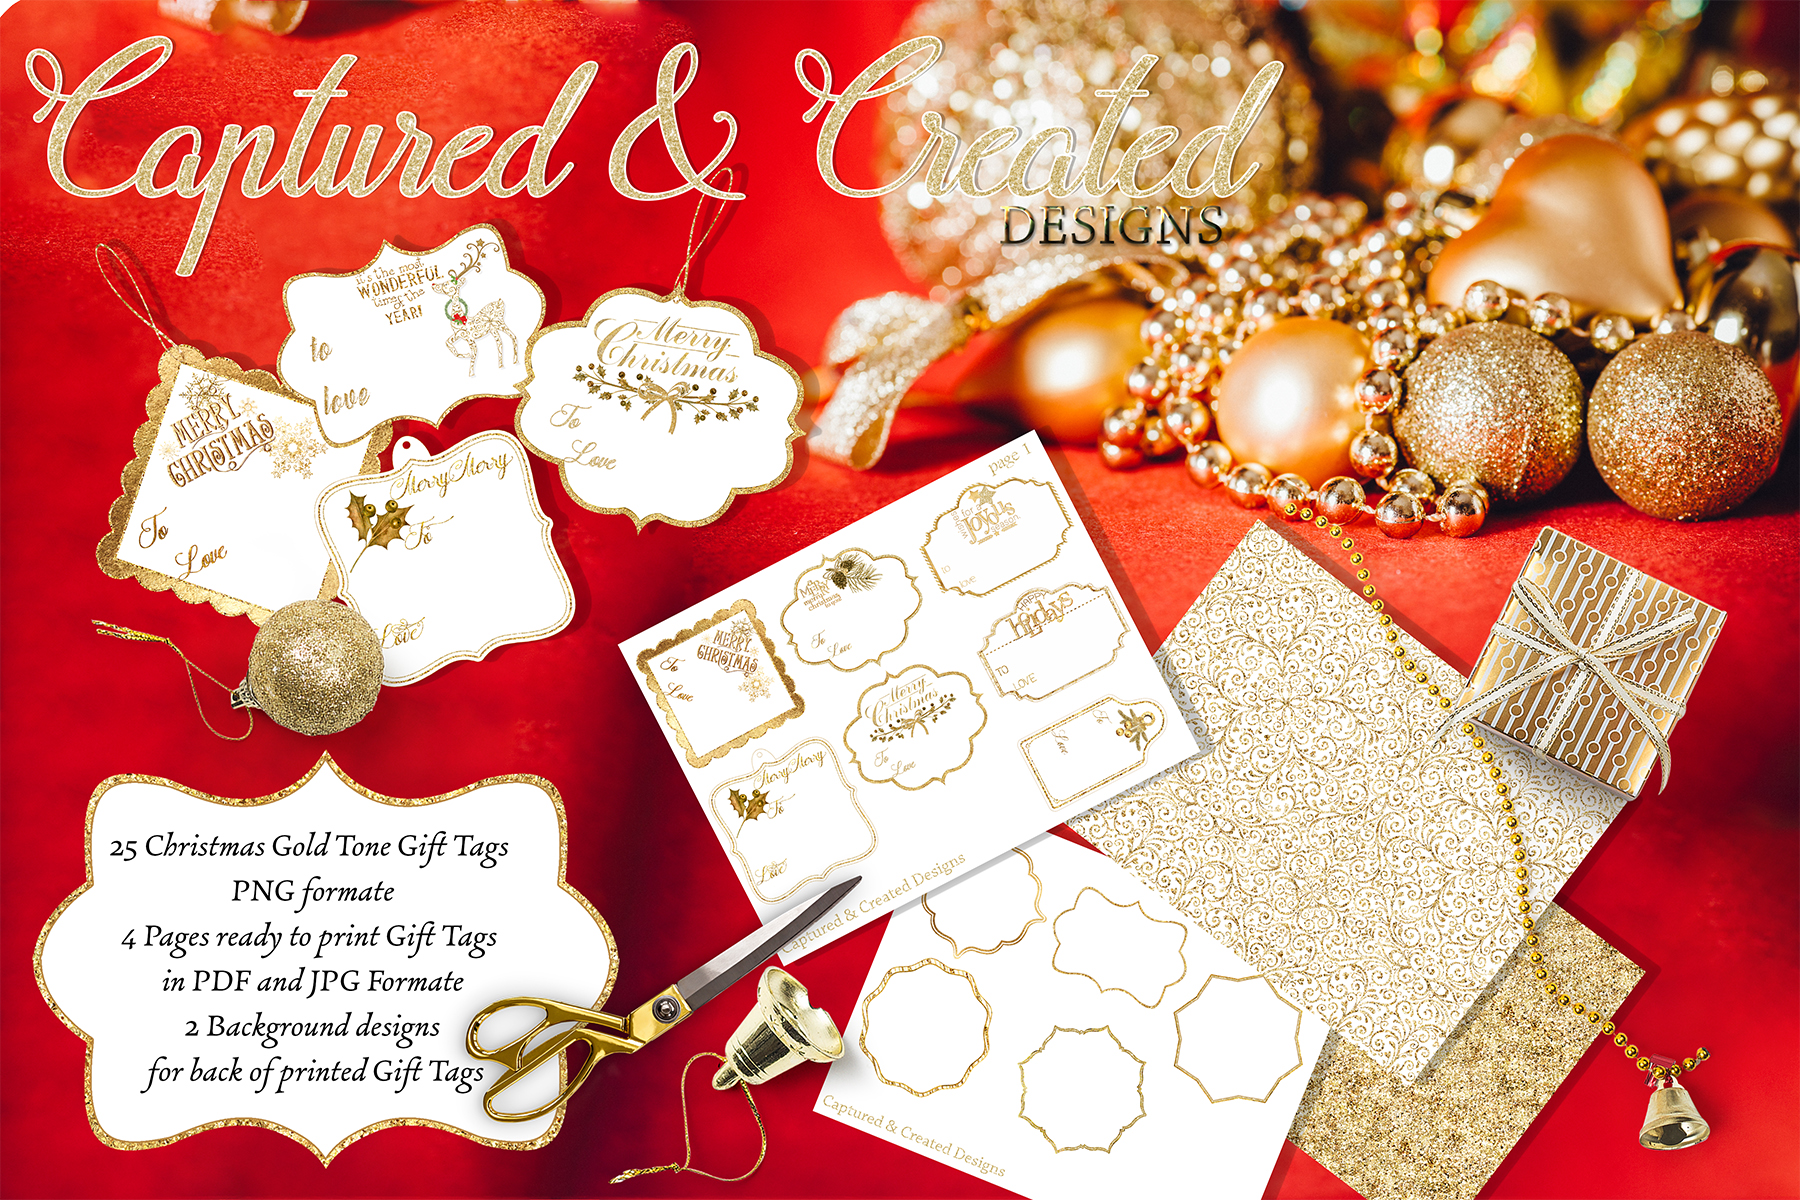 Diy 25 Christmas Glitter & Gold Gift Tags, Example Image